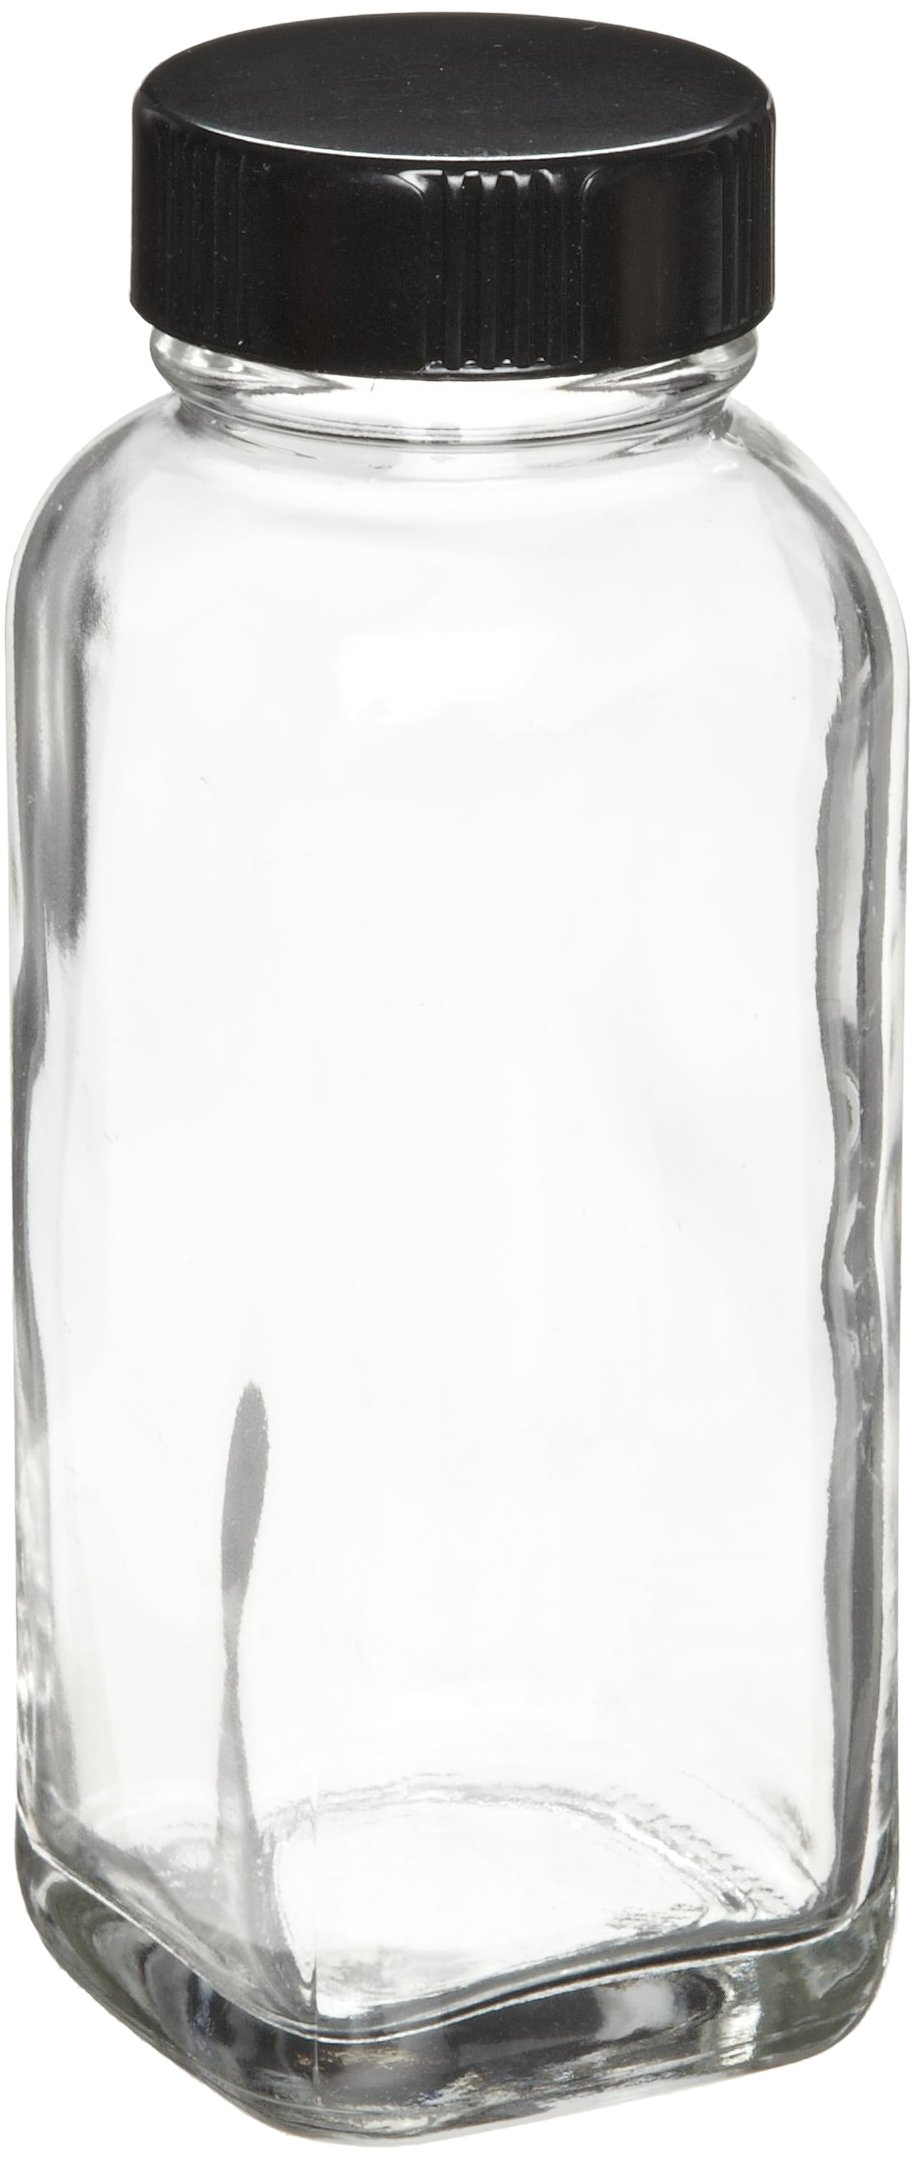 Wheaton W216886 French Square Bottle, Clear Glass, Capacity 4oz With 33-400 Black Phenolic Rubber Lined Screw Cap, Diameter 45mm x 111mm (Case Of 24)